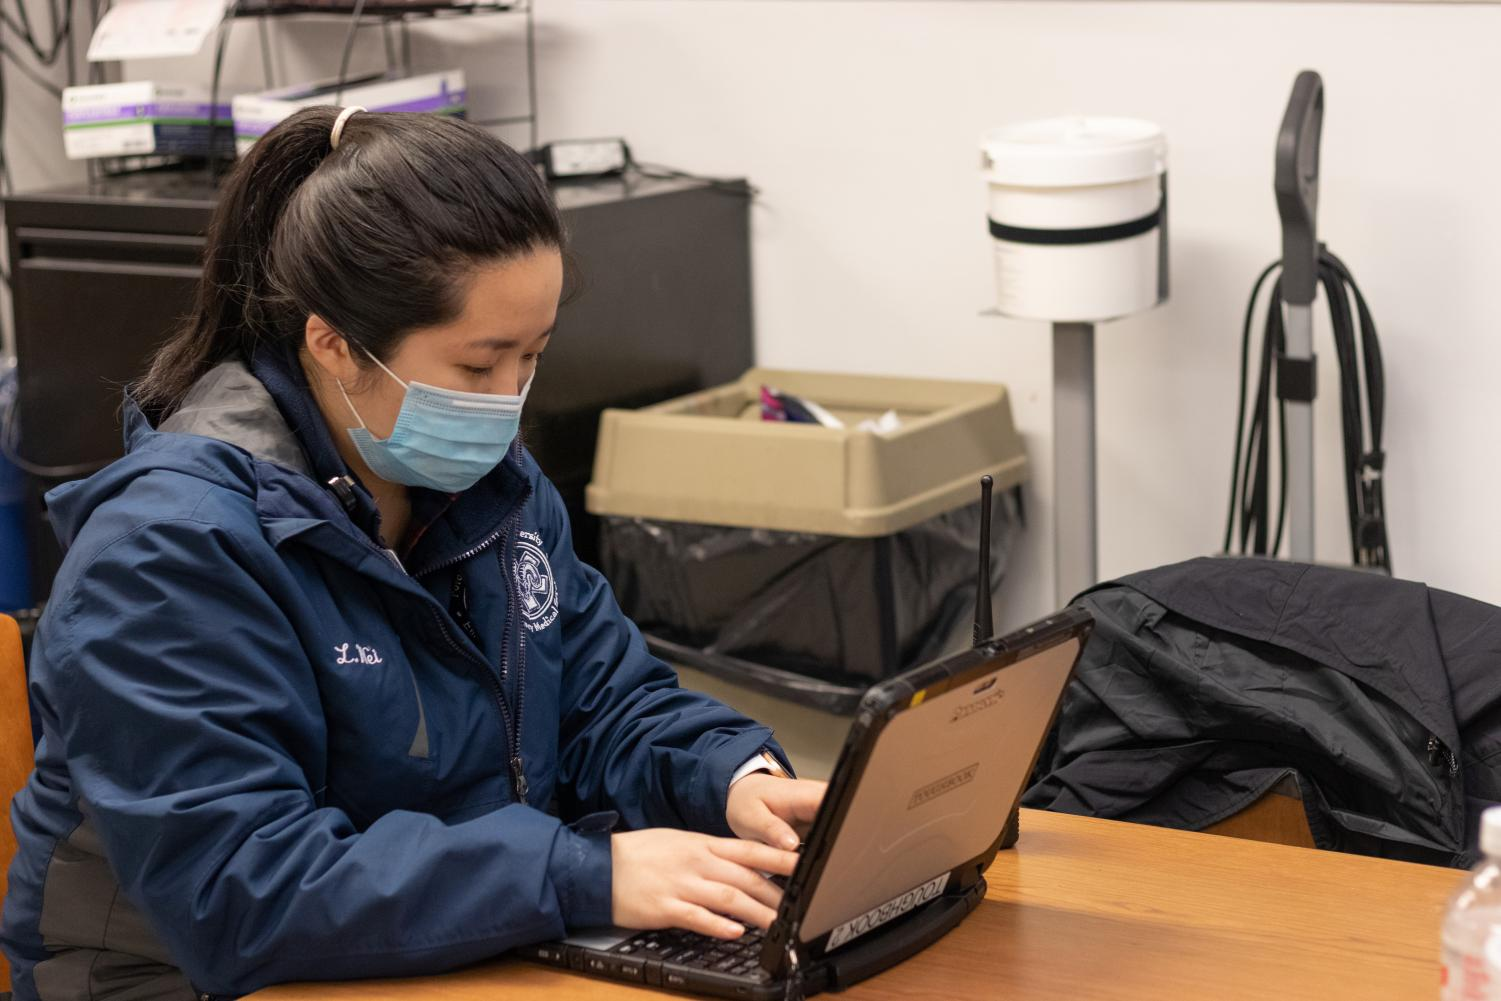 Li Ying Wei works on a laptop on her Fordham EMT job.